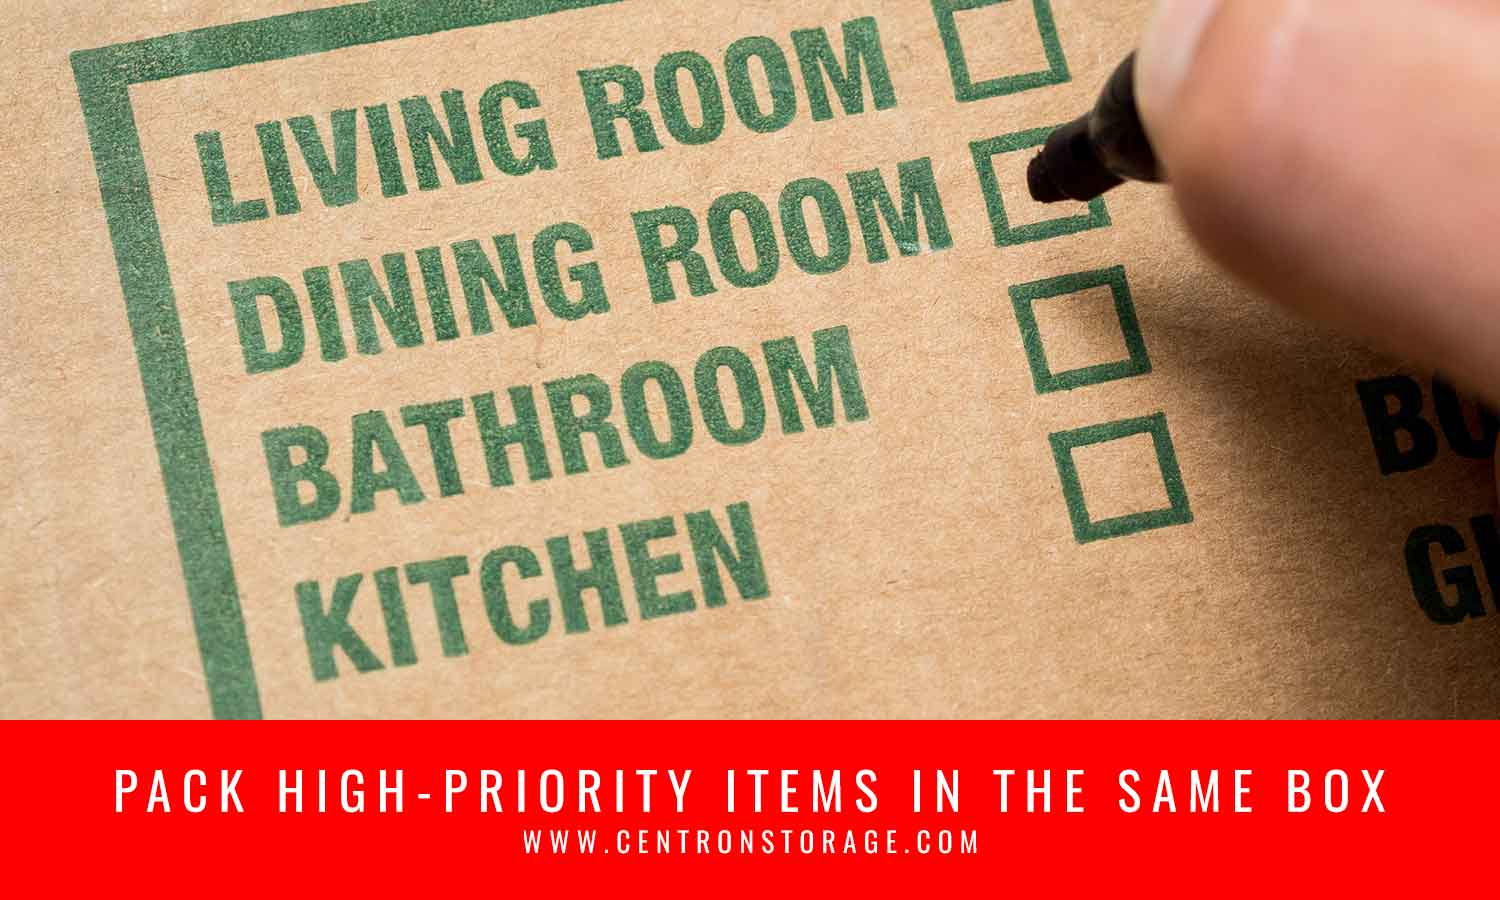 Pack high-priority items in the same box